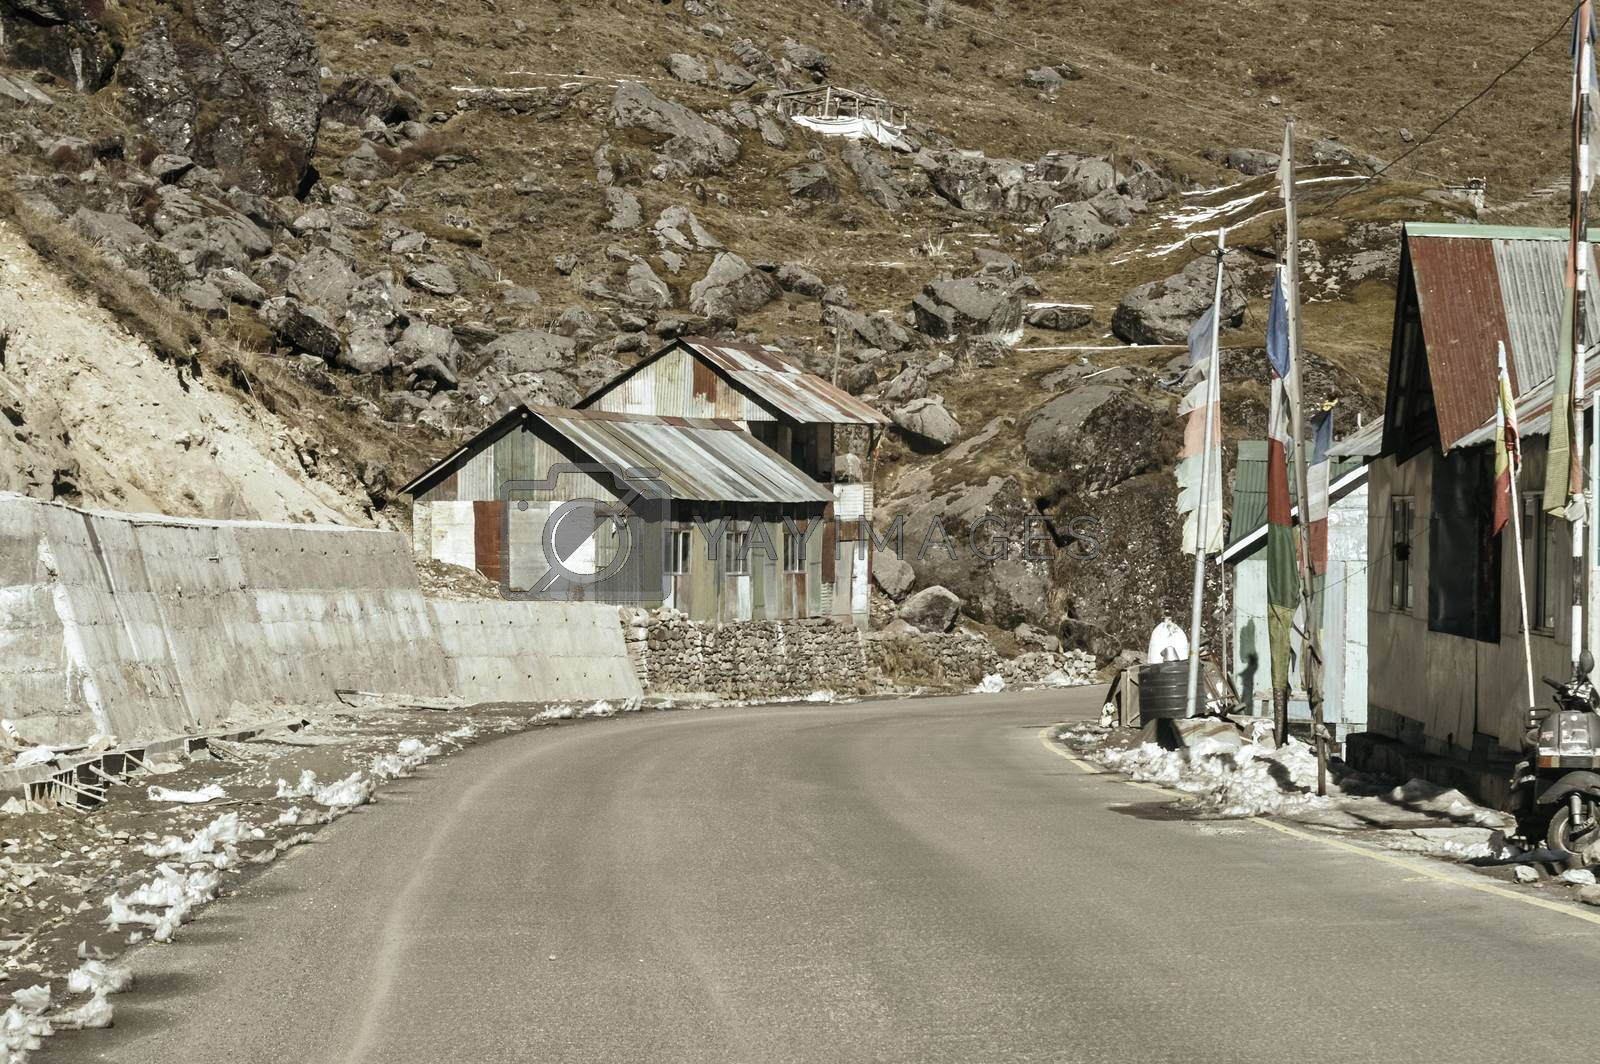 View of Military camp on a highway road side to Nathula Pass of India China border near Nathu La mountain pass in the Himalayas which connects Indian state Sikkim with China's Tibet Region.